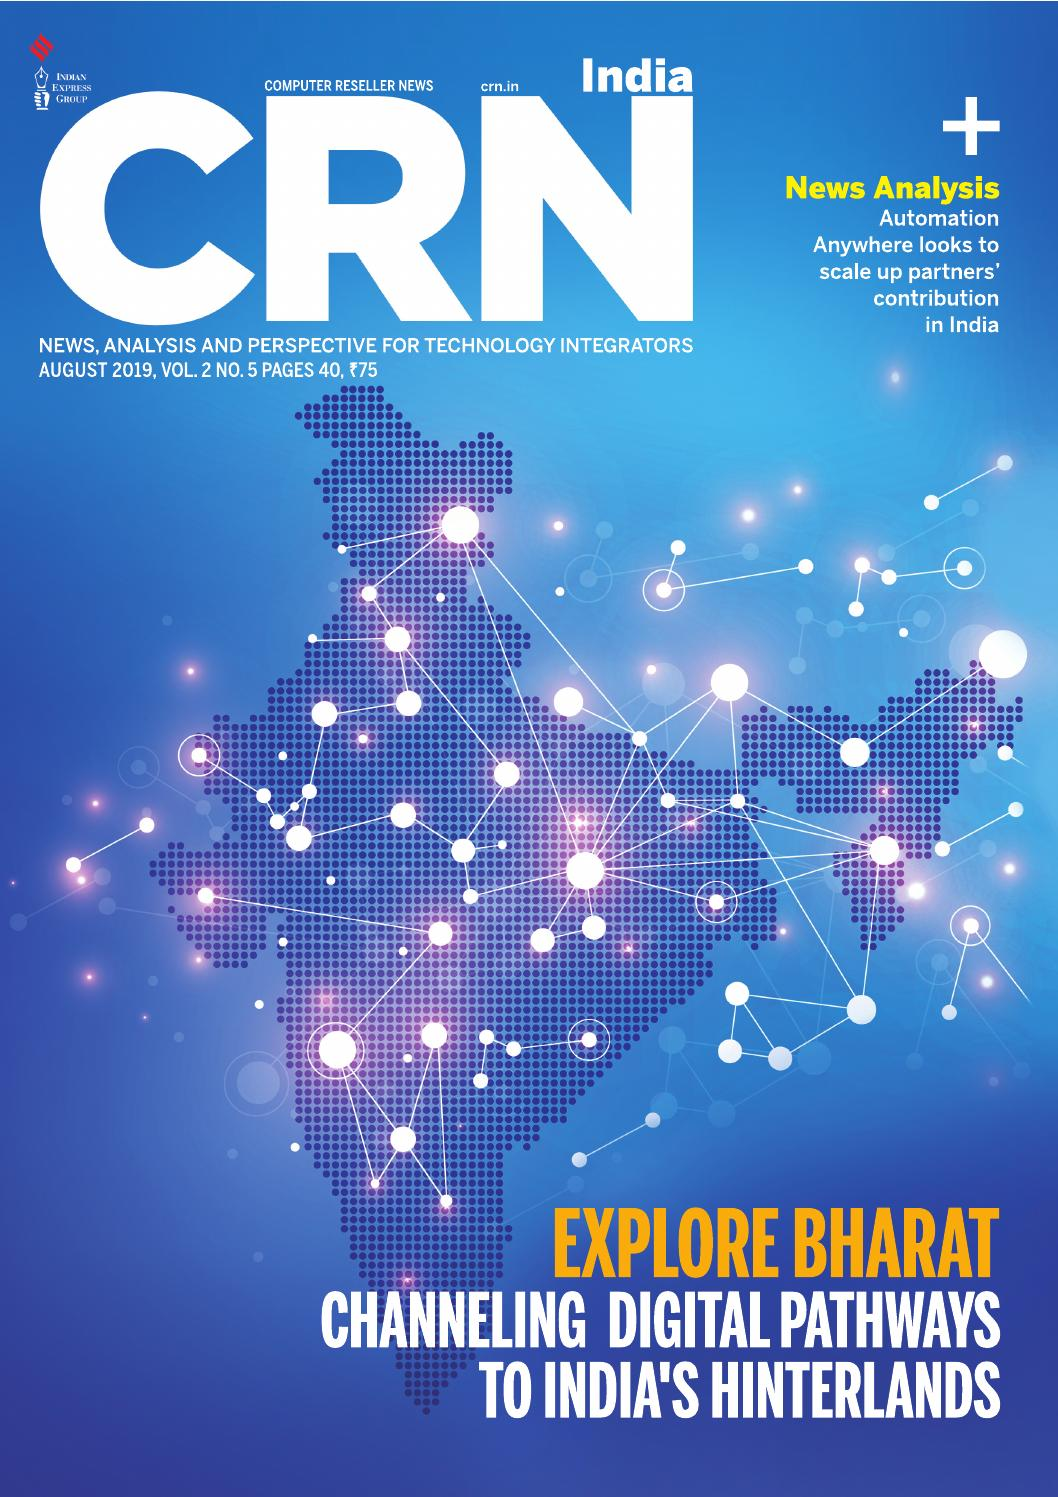 CRN India (Vol 2, No 5) August, 2019 by Indian Express - issuu